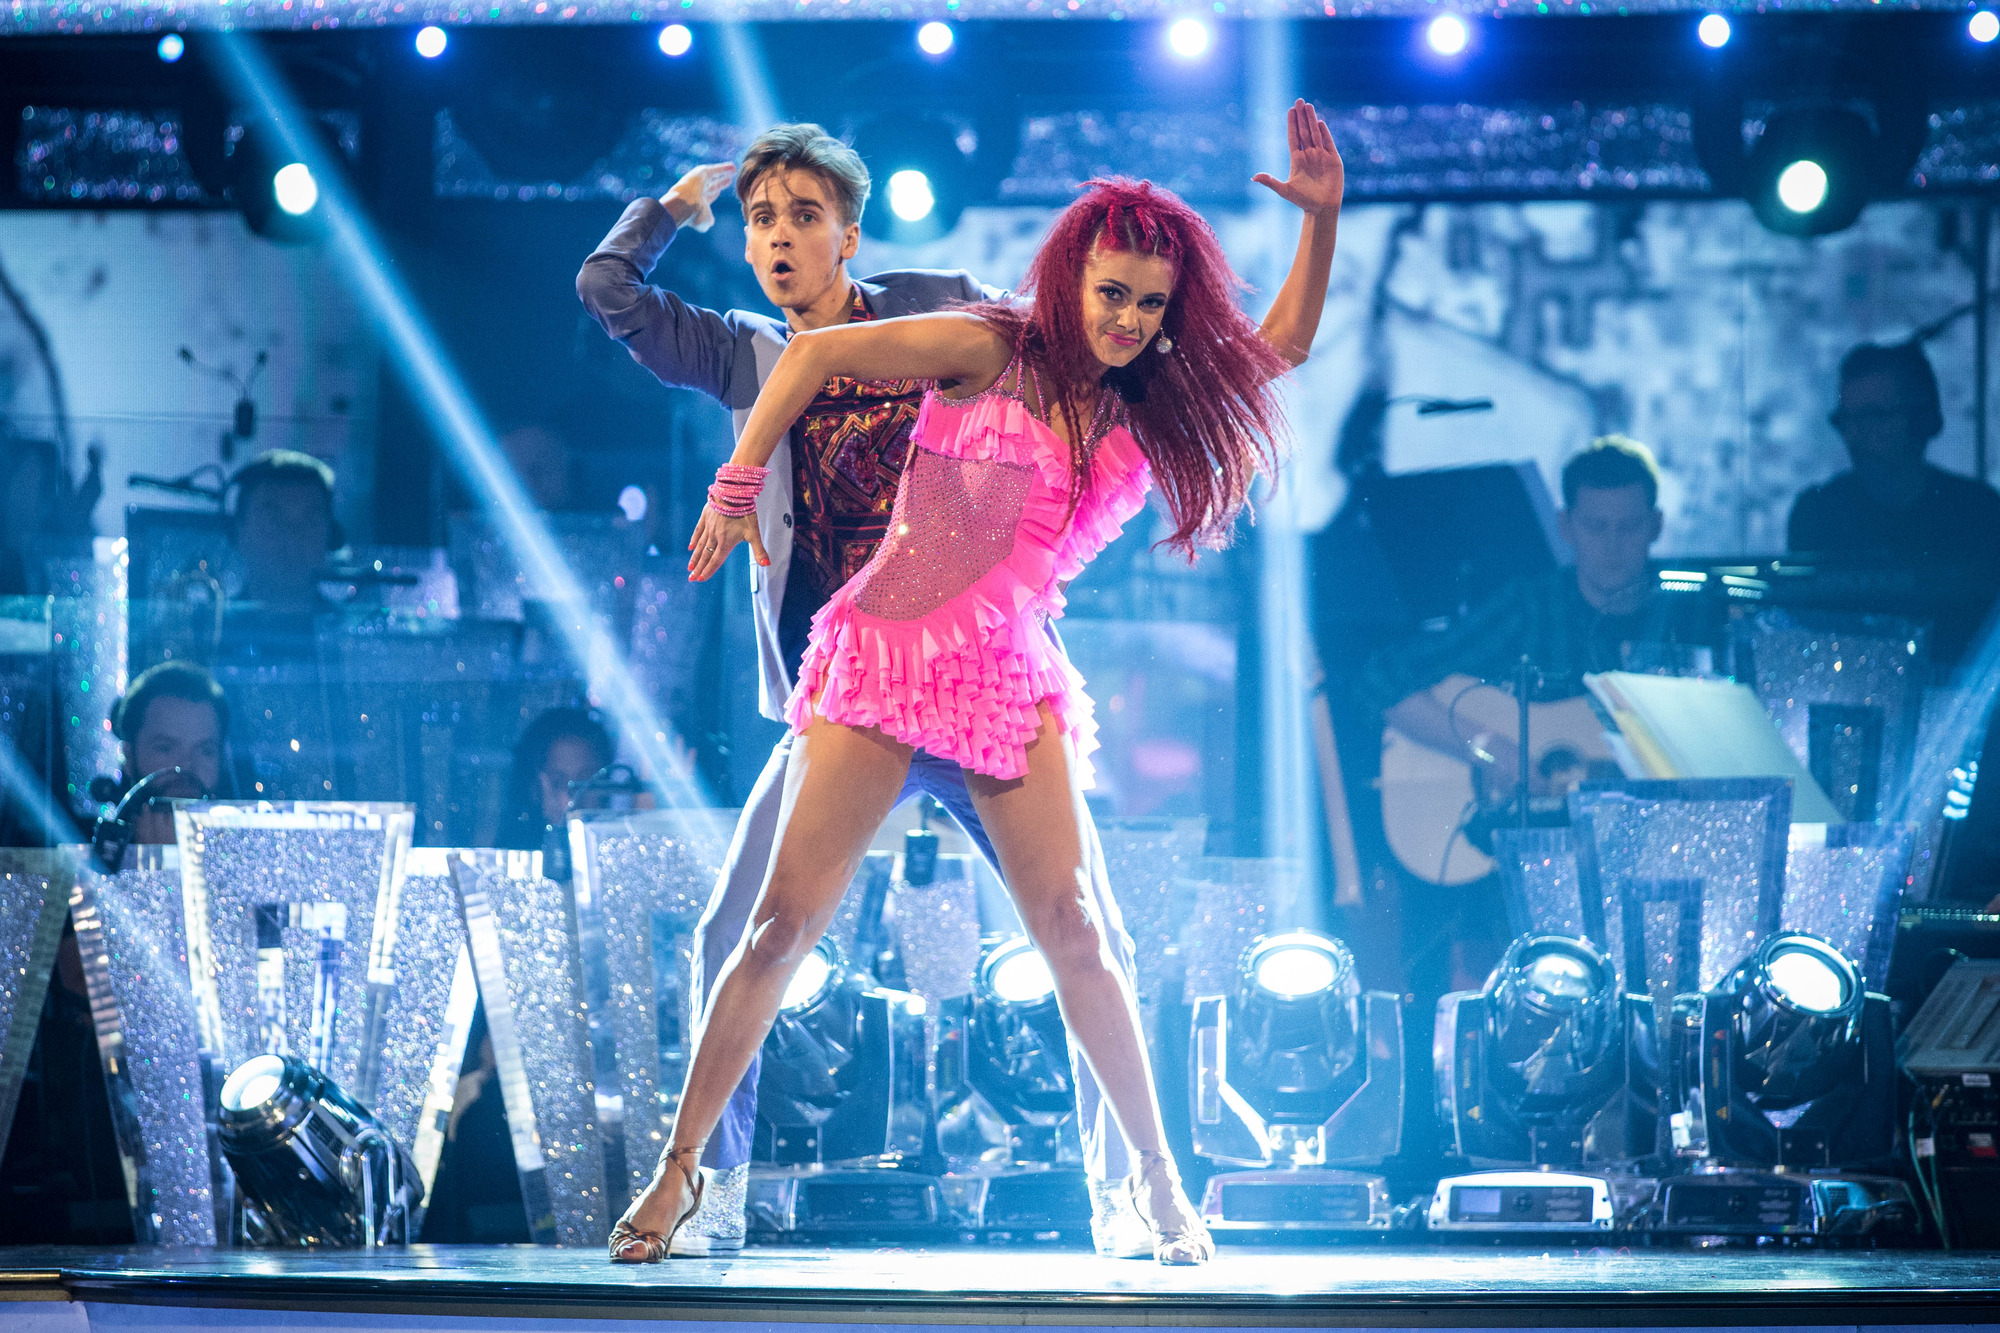 Joe Sugg leaves impressed viewers 'pleasantly surprised' as he makes Strictly Come Dancing debut